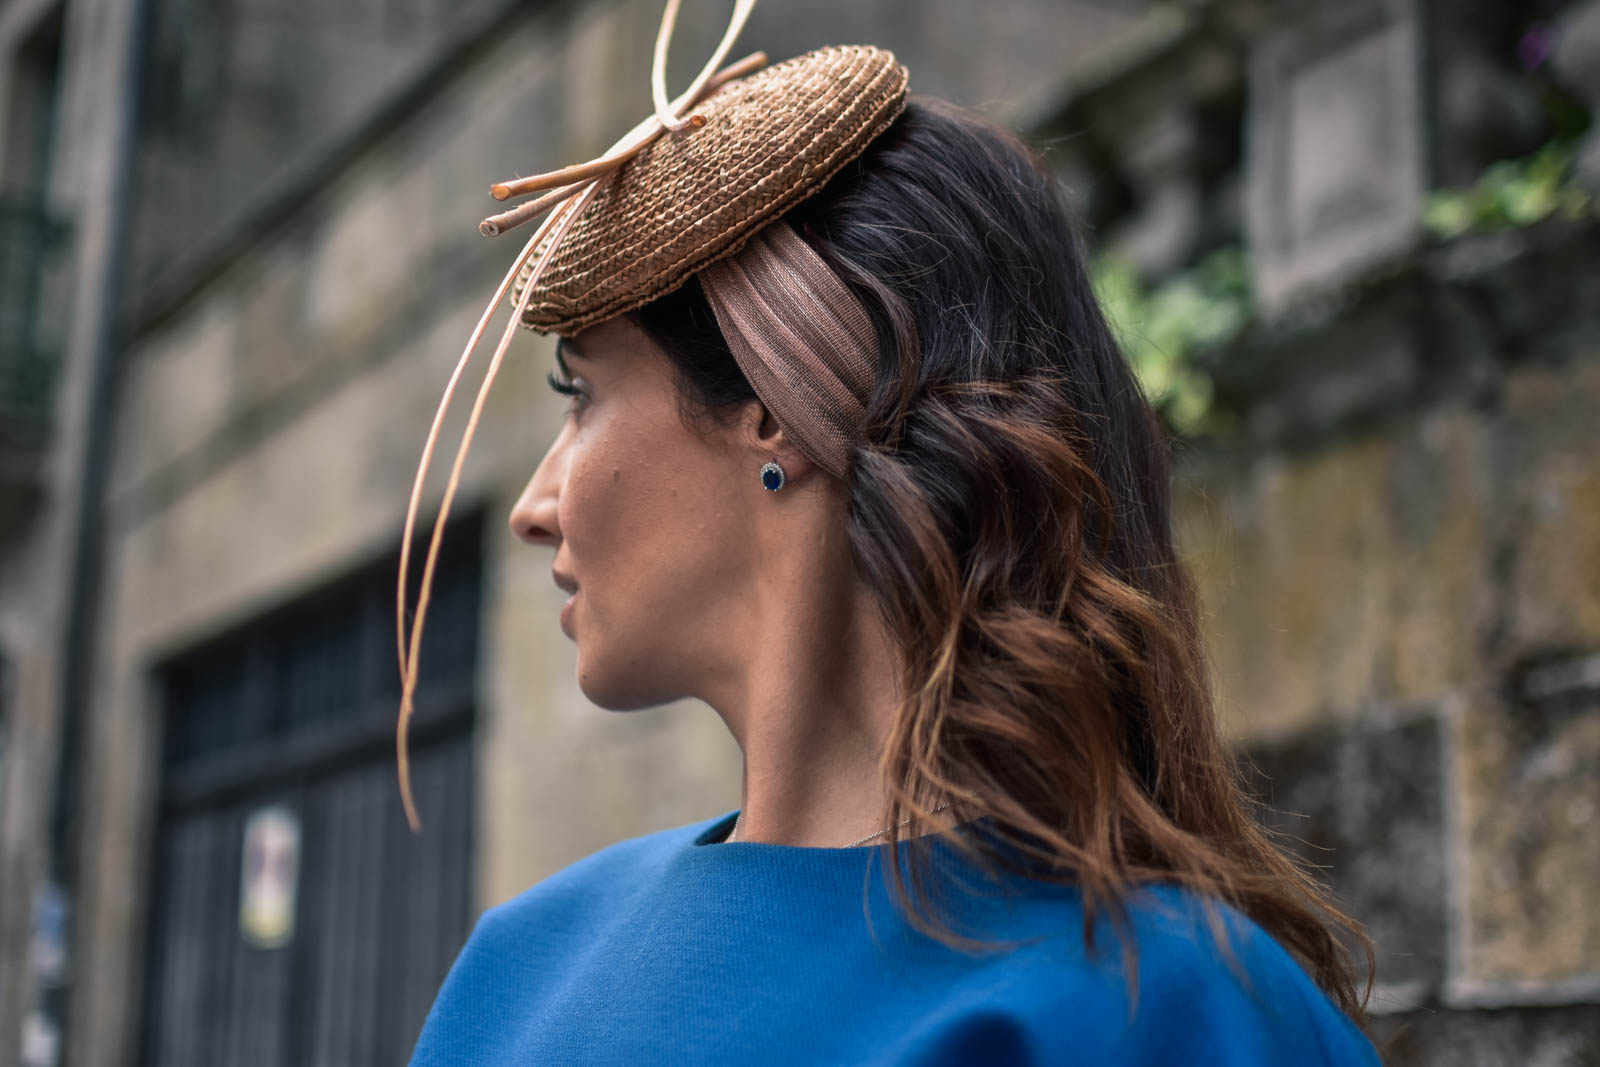 el-blog-de-silvia-rodriguez-street-style-wedding-dress-devota-y-lomba-bulgari-bag-masario-tocado-blogger-boda-otoño-manolo-blahnik